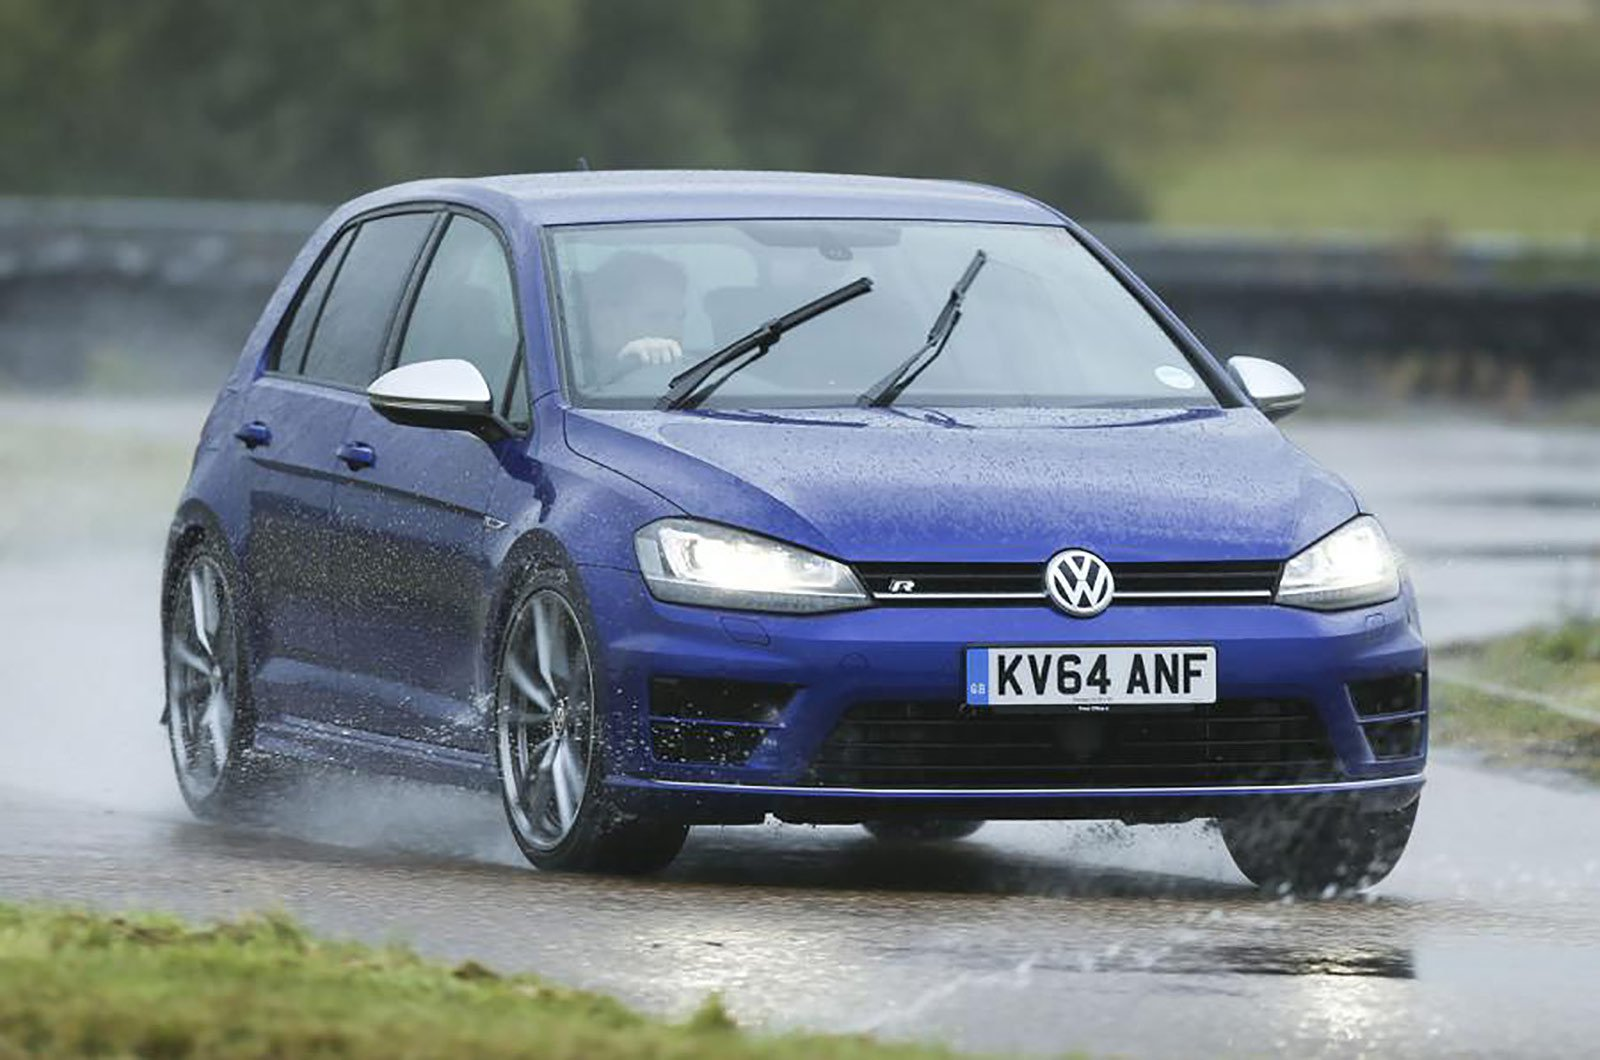 VW Golf R driving in the wet